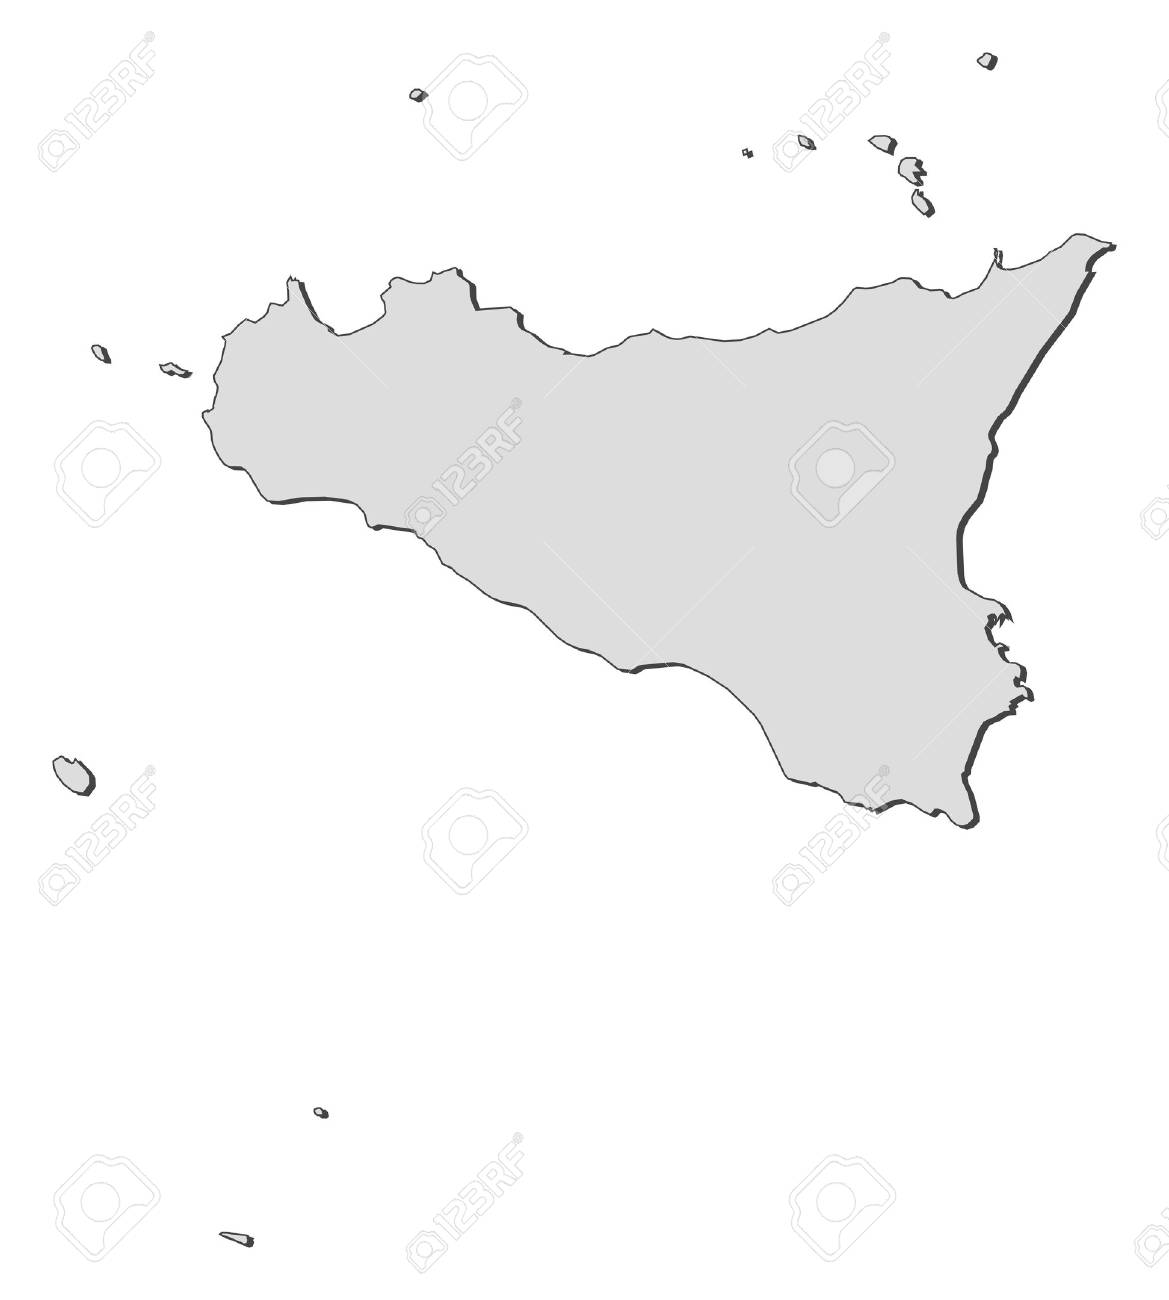 Map of Sicily, a region of Italy. - 14396166